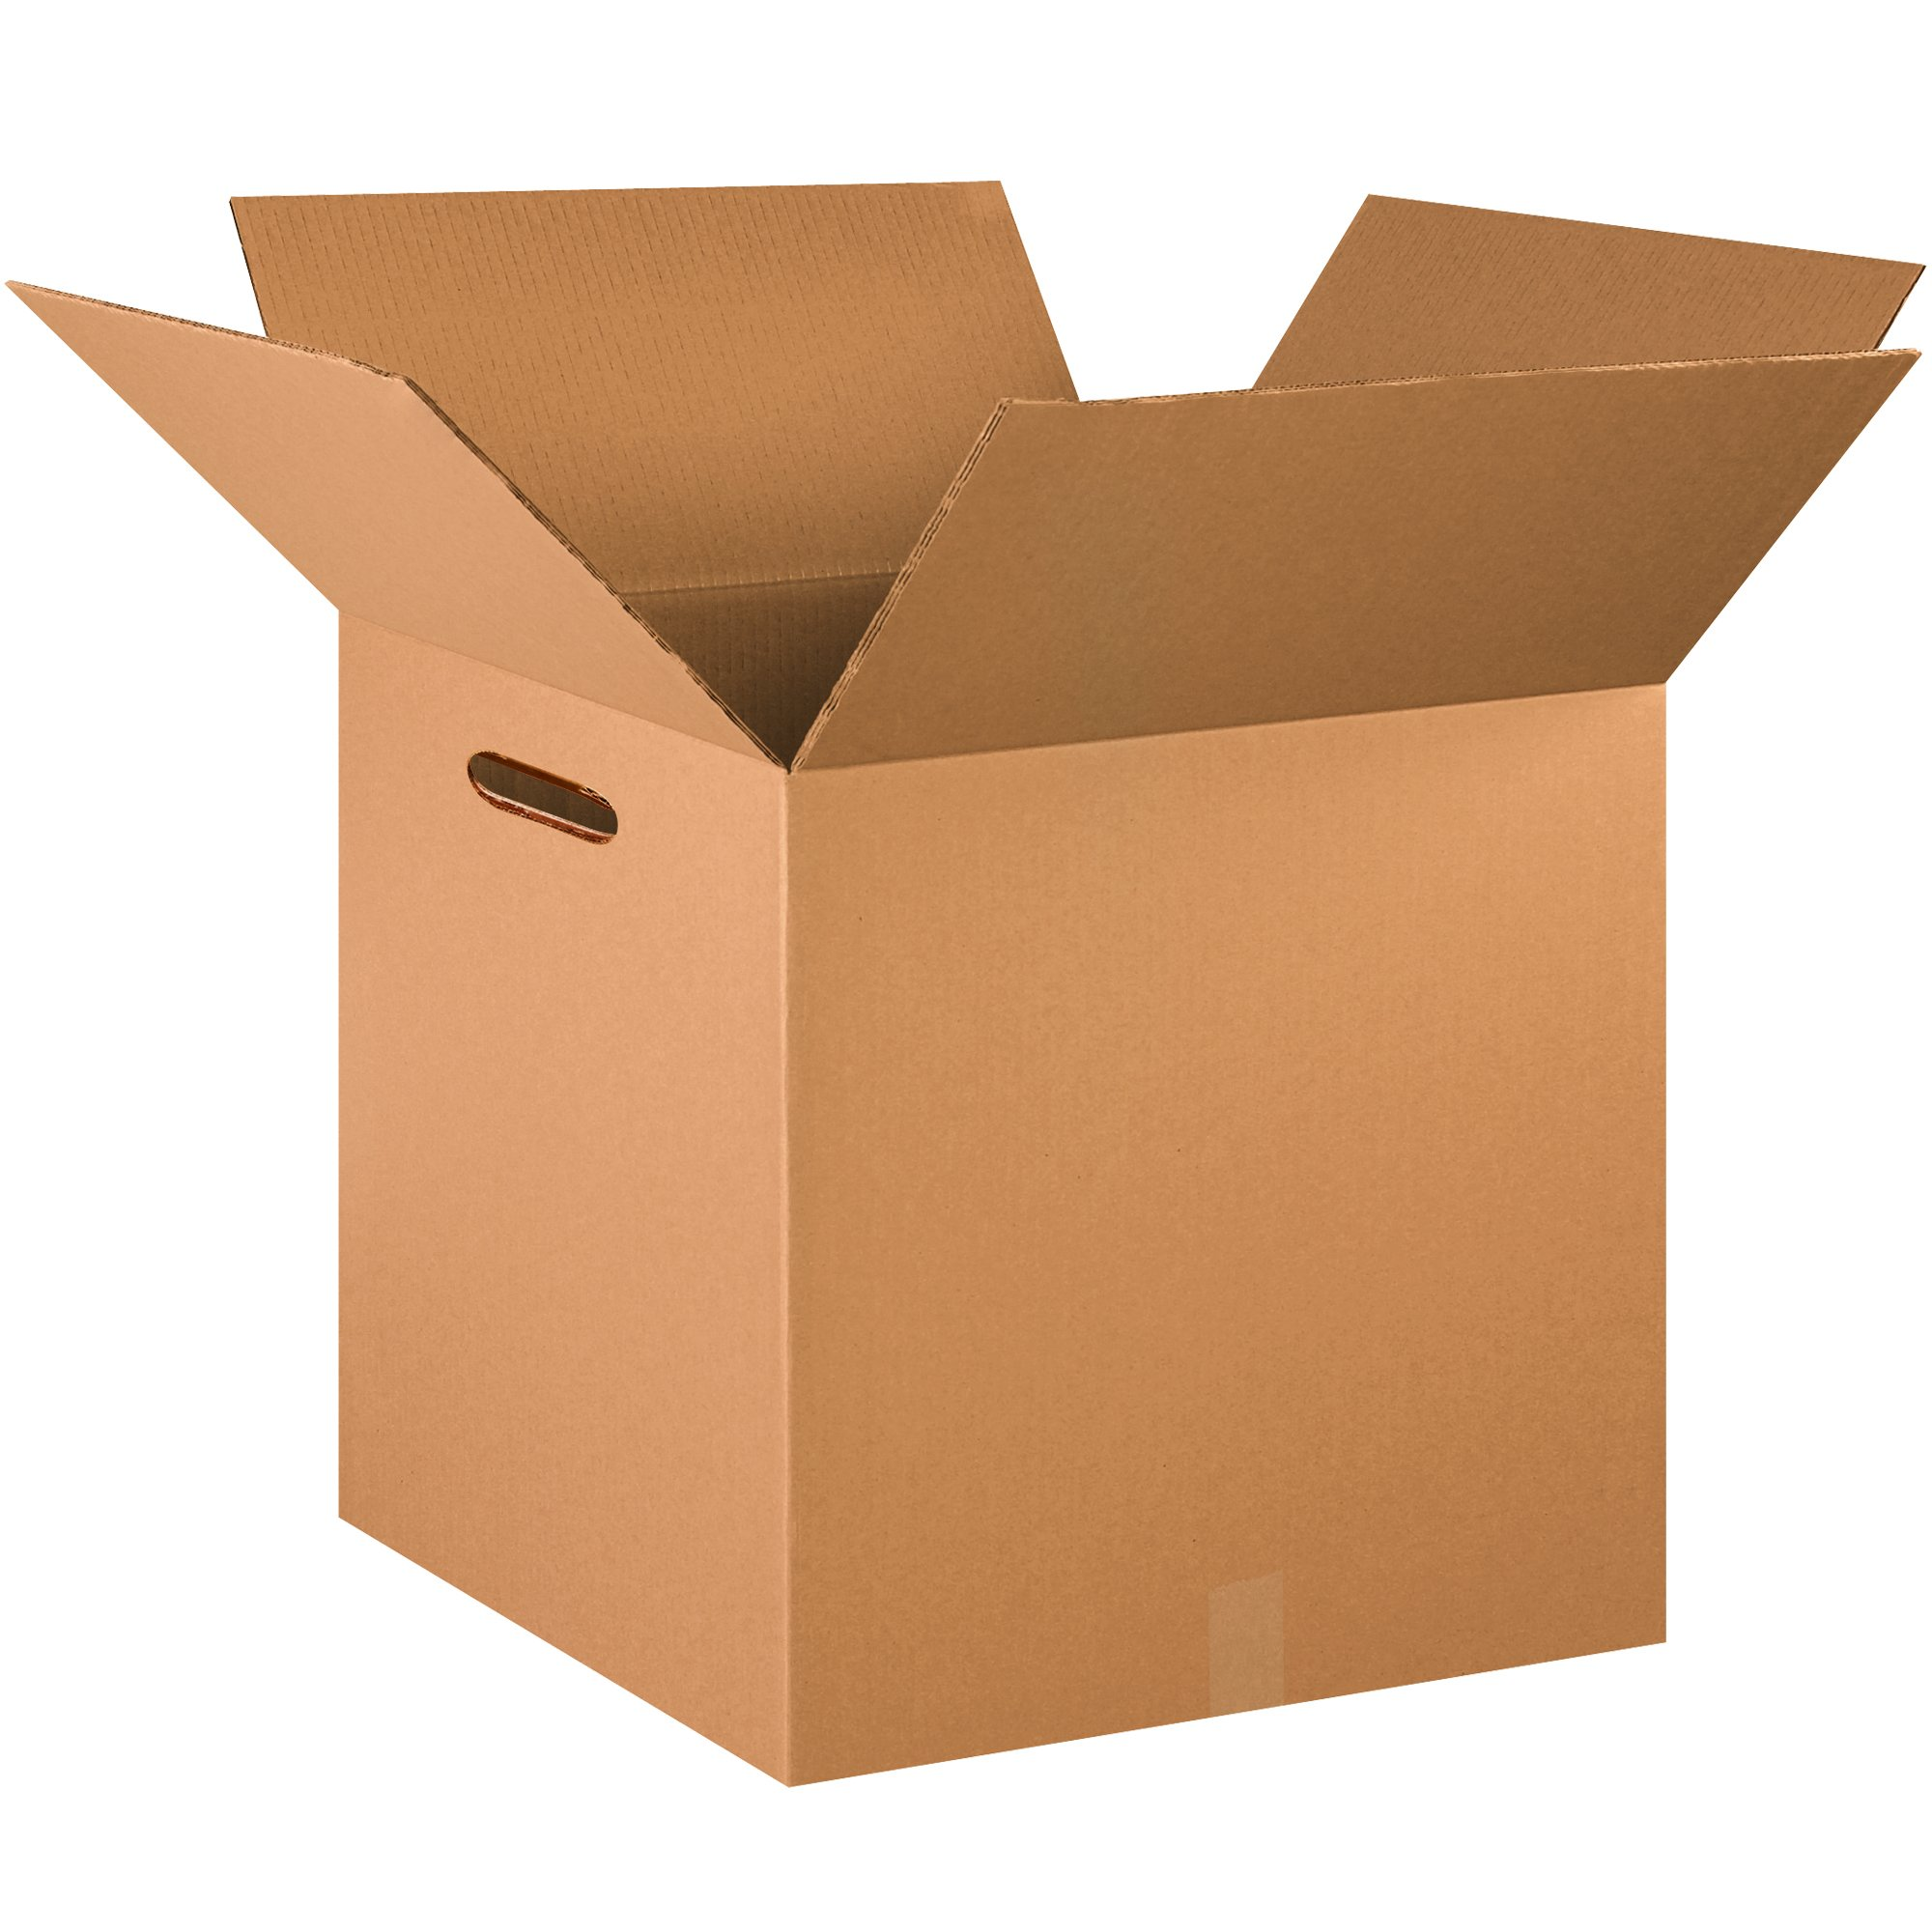 24 x 24 x 24 Kraft Pack of 10 BOX USA BHD242424DWHH Double Wall Boxes with Hand Holes